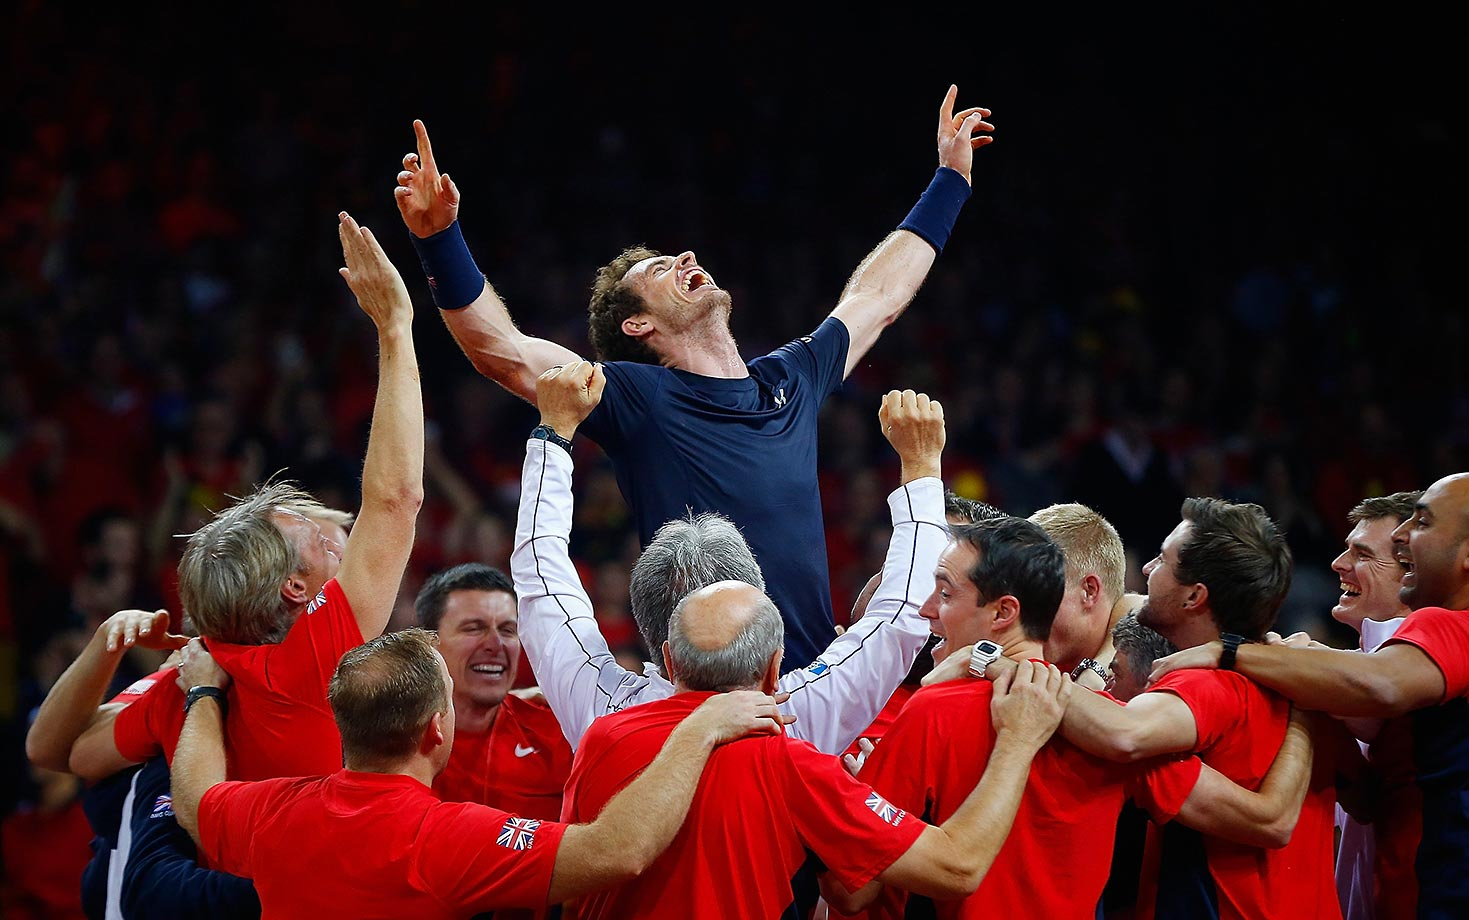 Andy Murray celebrates with his team after winning the Davis Cup for Great Britain.